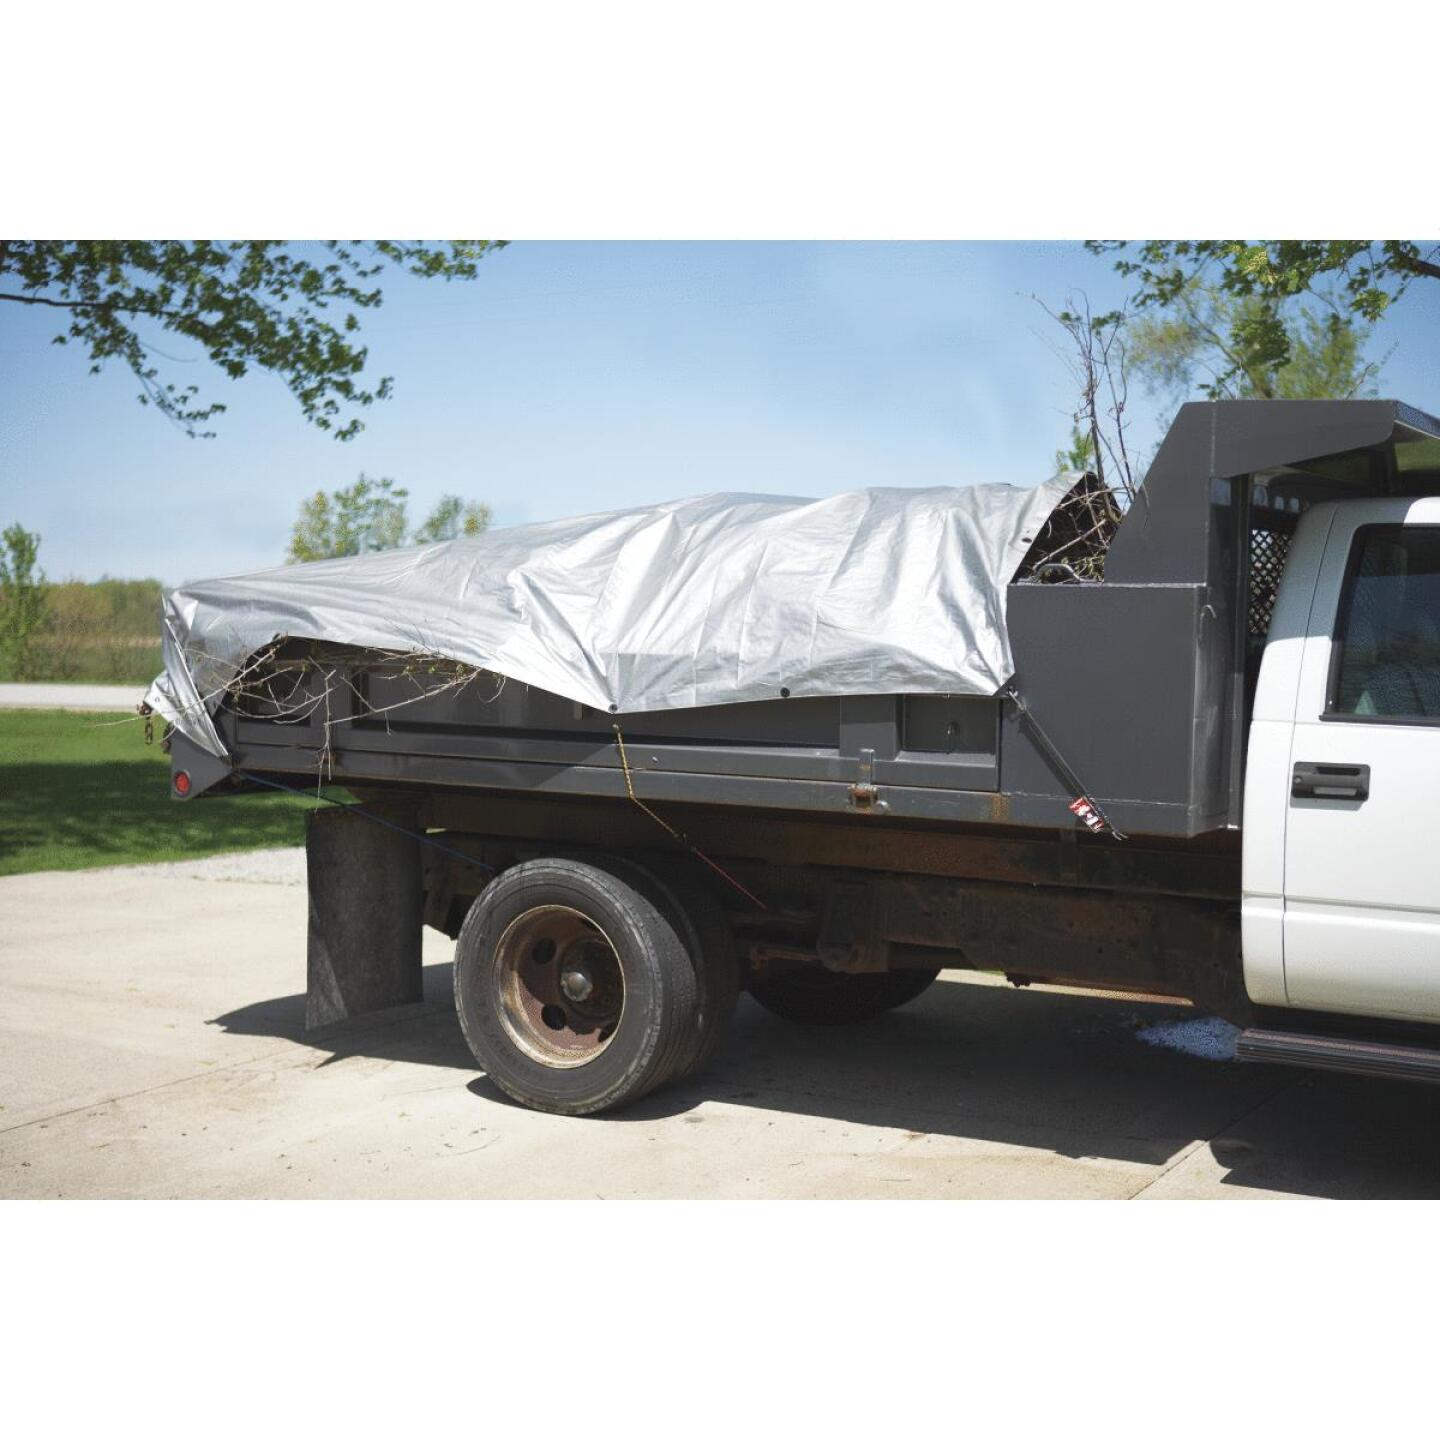 Do it Best Silver Woven 9 Ft. x 12 Ft. Heavy Duty Poly Tarp Image 3